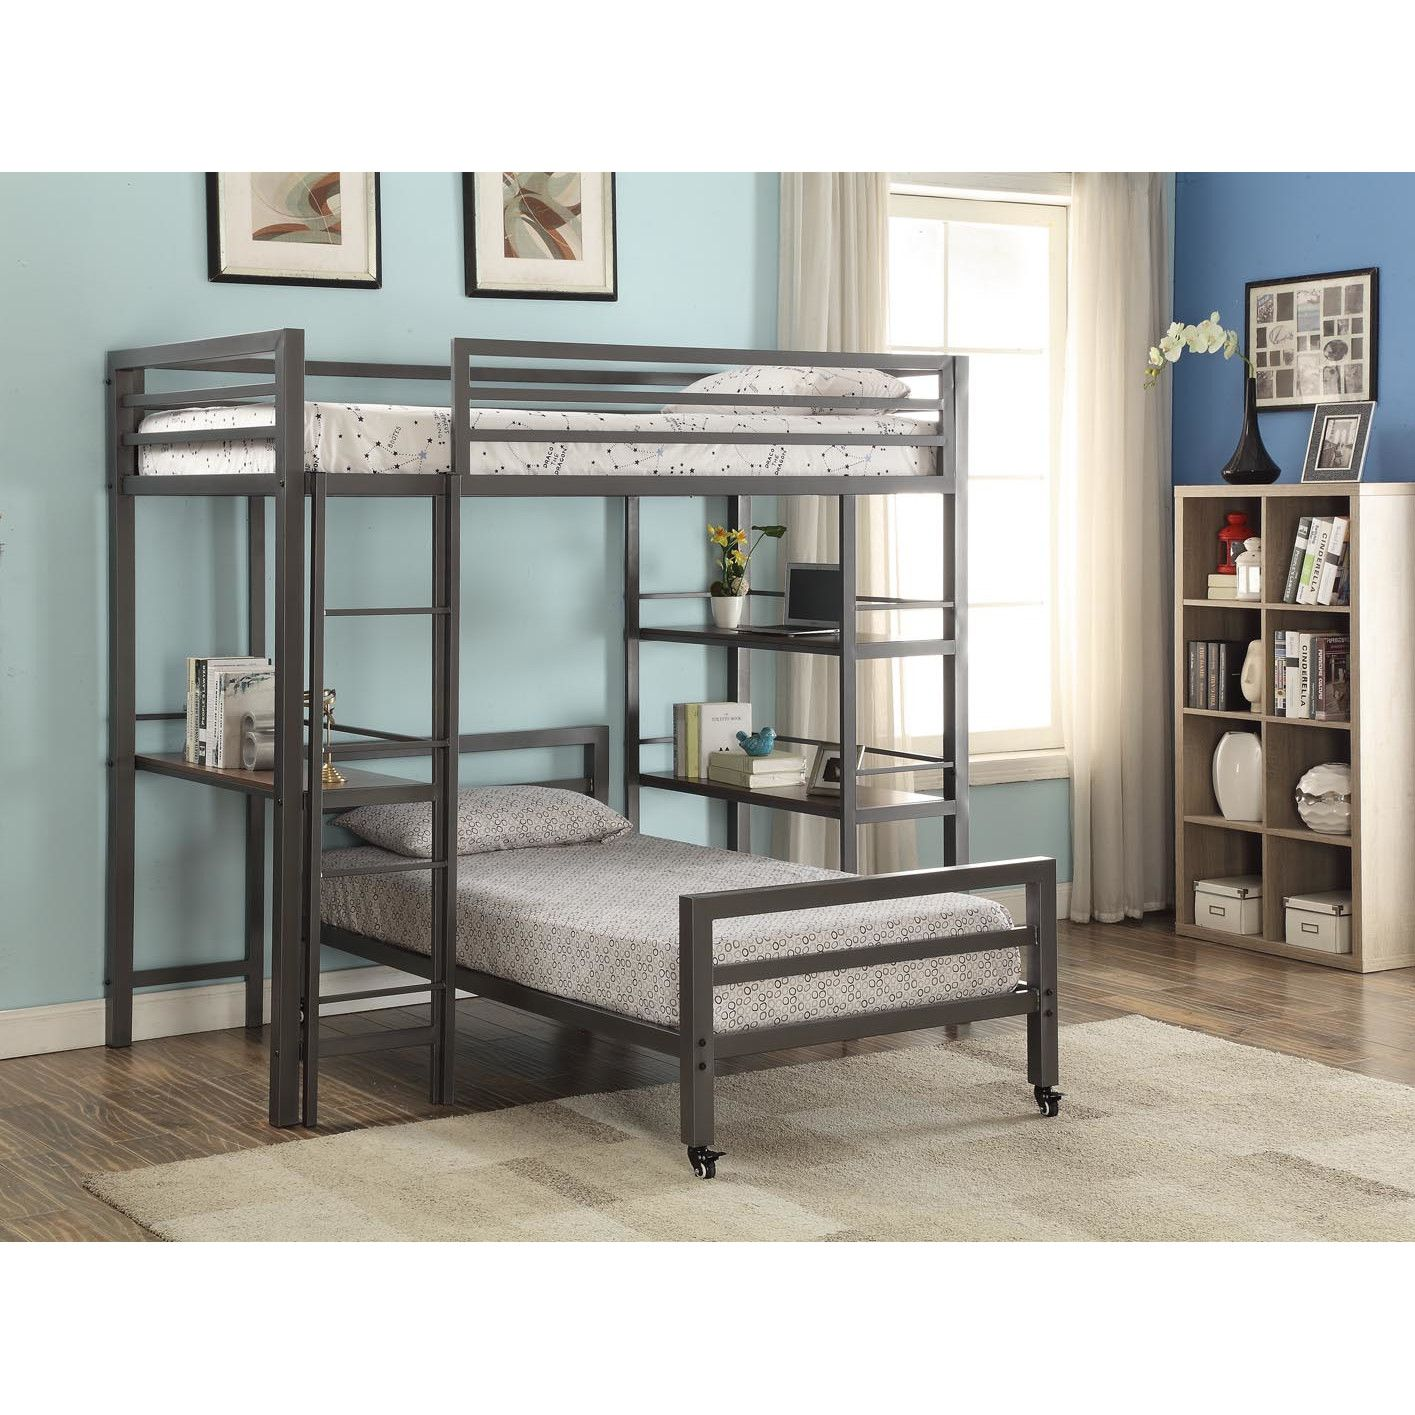 Gray loft bed with desk  Viv  Rae Diann Twin Loft Bed with Bookshelves and Writing Desk